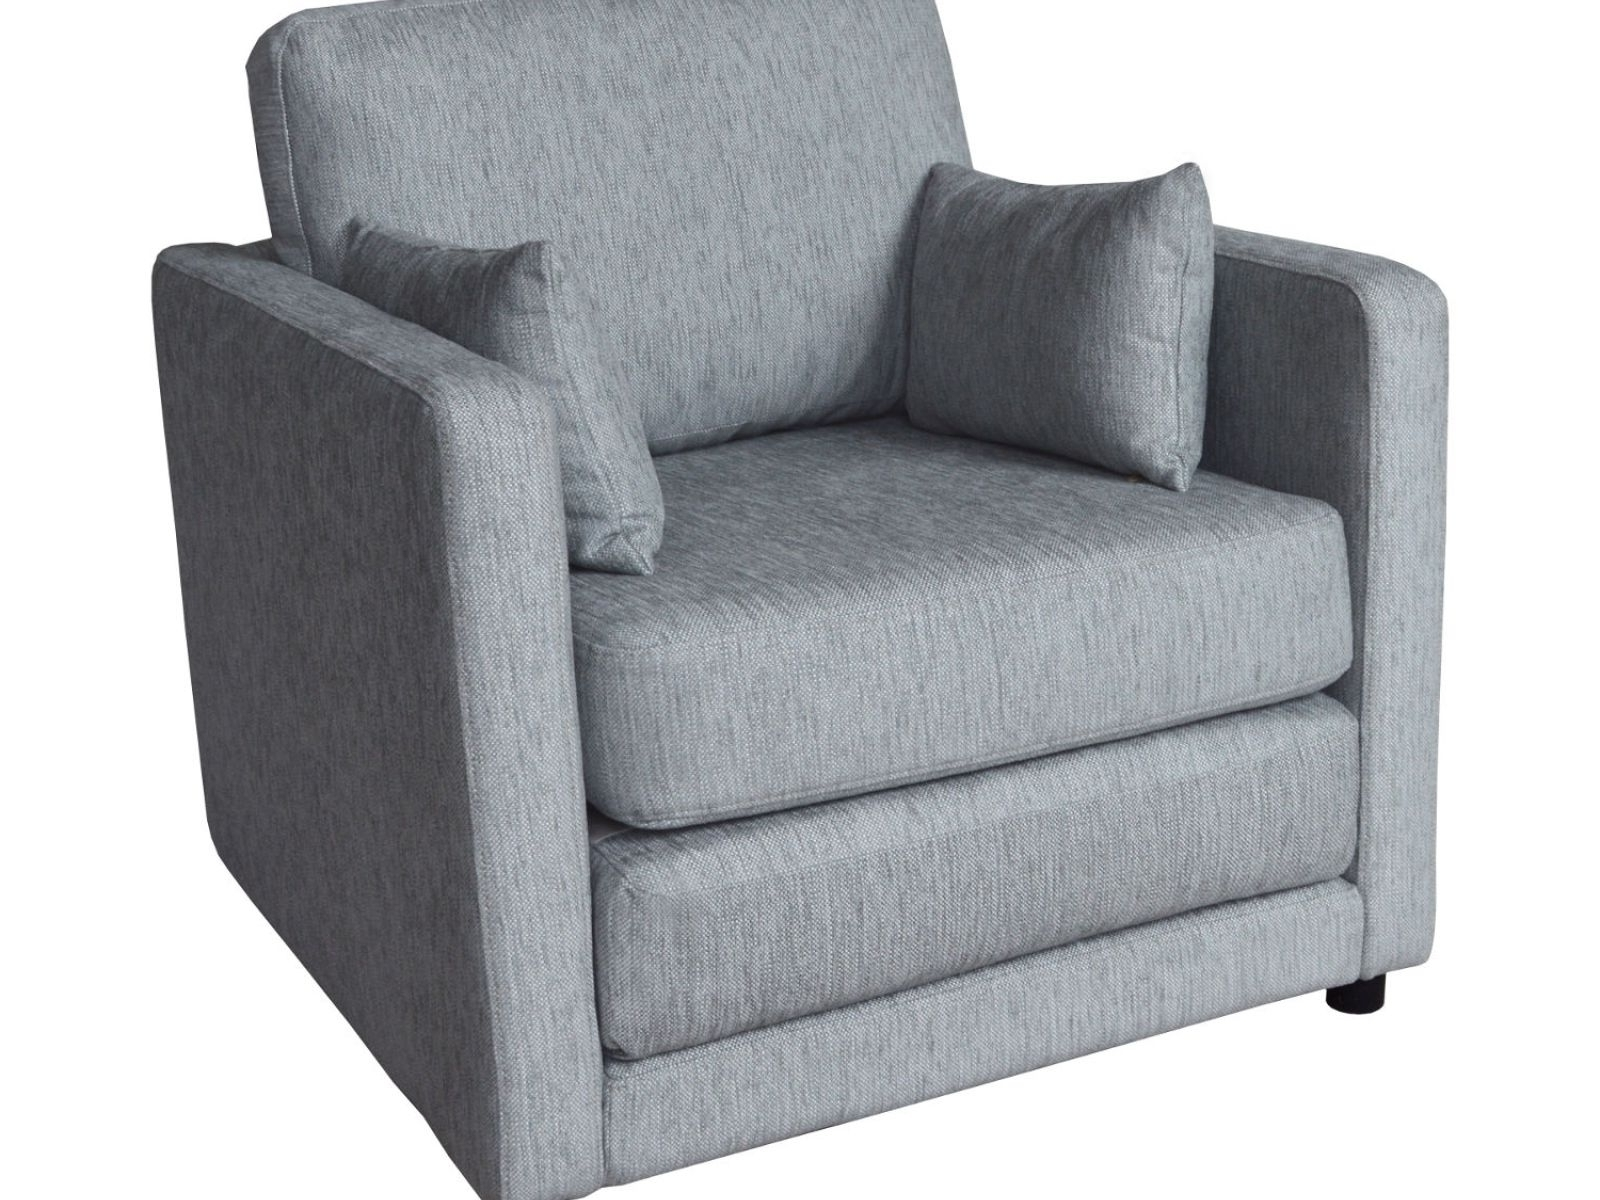 Sofas : Single Seater Sofa Sofa Bed Price Sofa Bed Deals Couch Bed Regarding Newest Single Sofas (View 11 of 15)